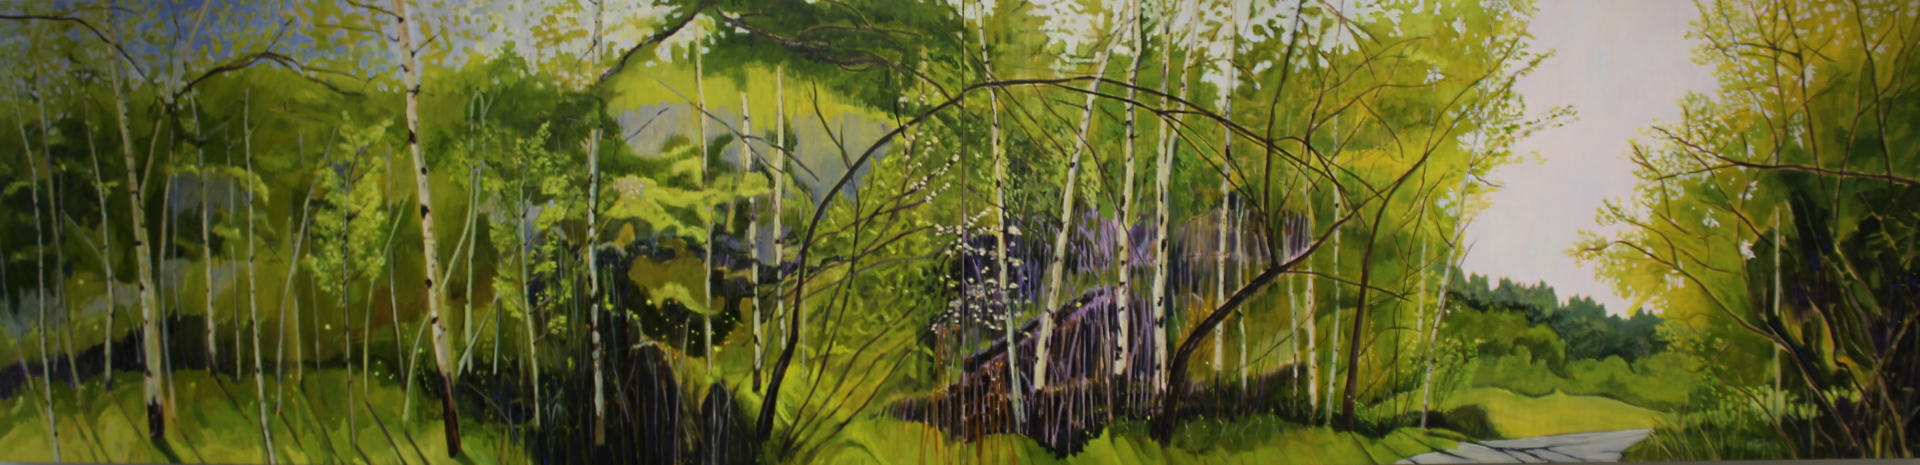 NEAR GOVERNMENT HOUSE - 40 X 168 - OIL ON CANVAS - 2015